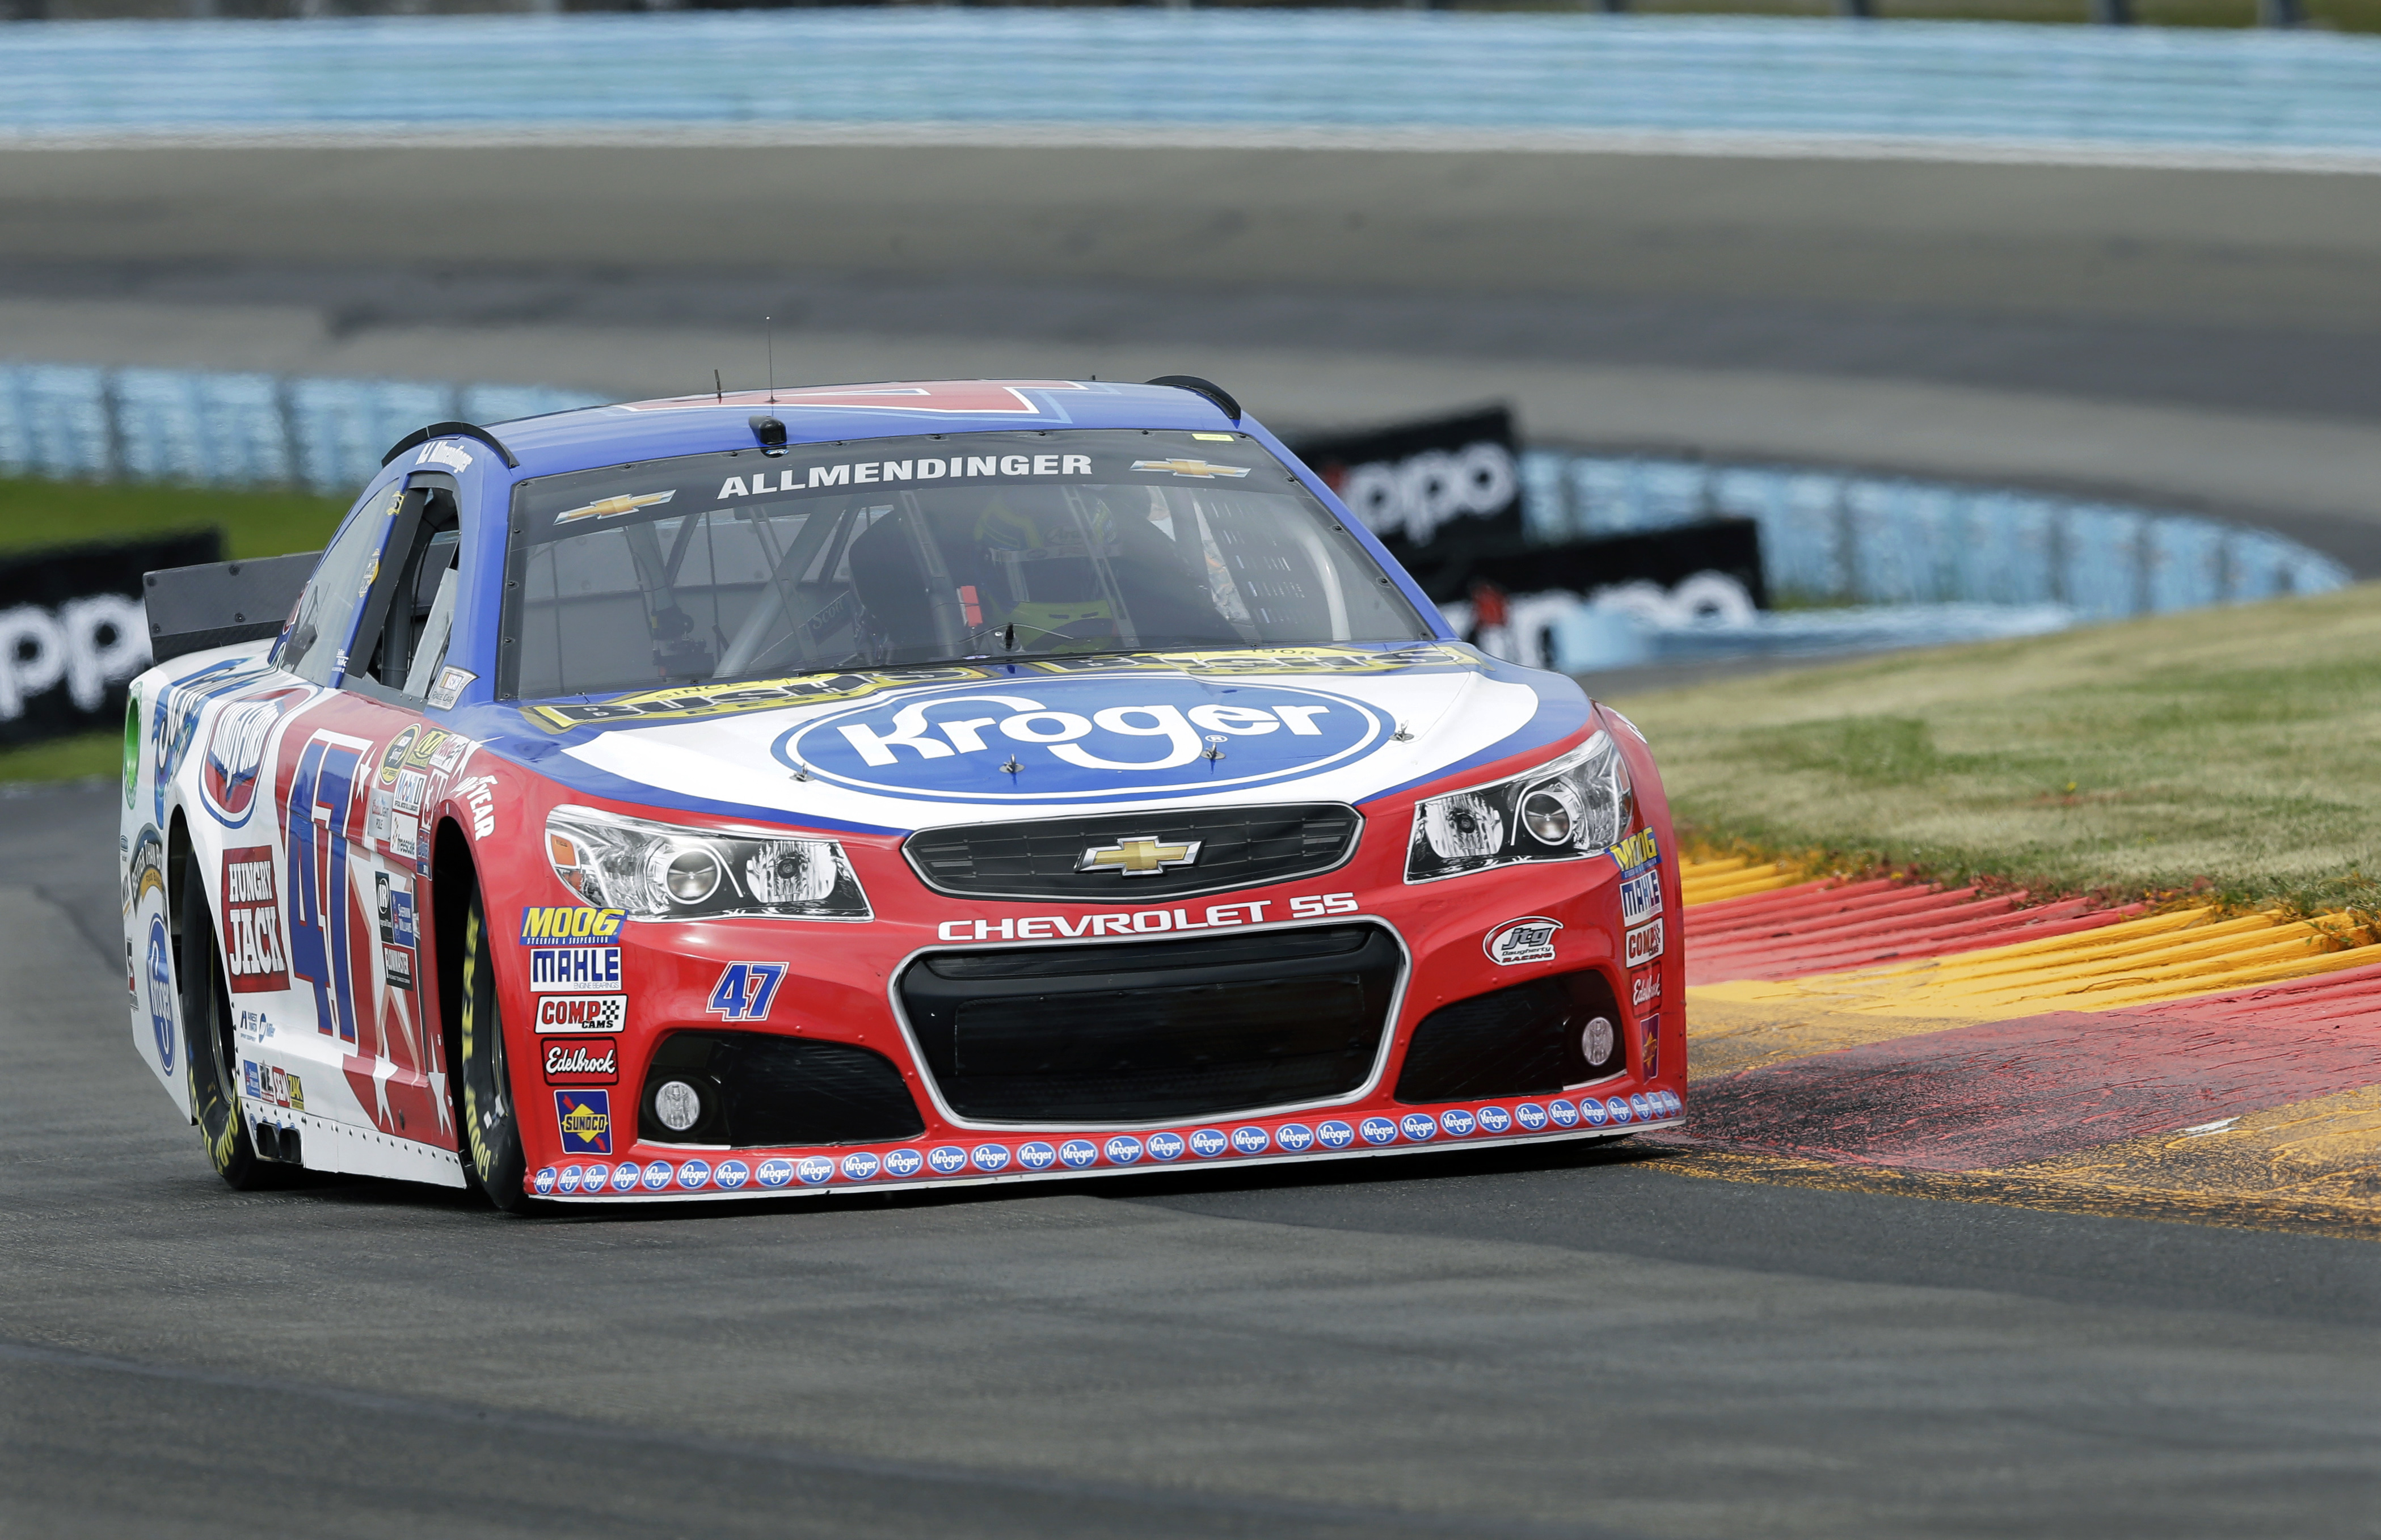 AJ Allmendinger (47) drives during qualifying for Sunday's NASCAR Sprint Cup series auto race at Watkins Glen International, Saturday, Aug. 8, 2015, in Watkins Glen, N.Y. Allmendinger won the pole position for Sunday's race. (AP Photo/Mel Evans)